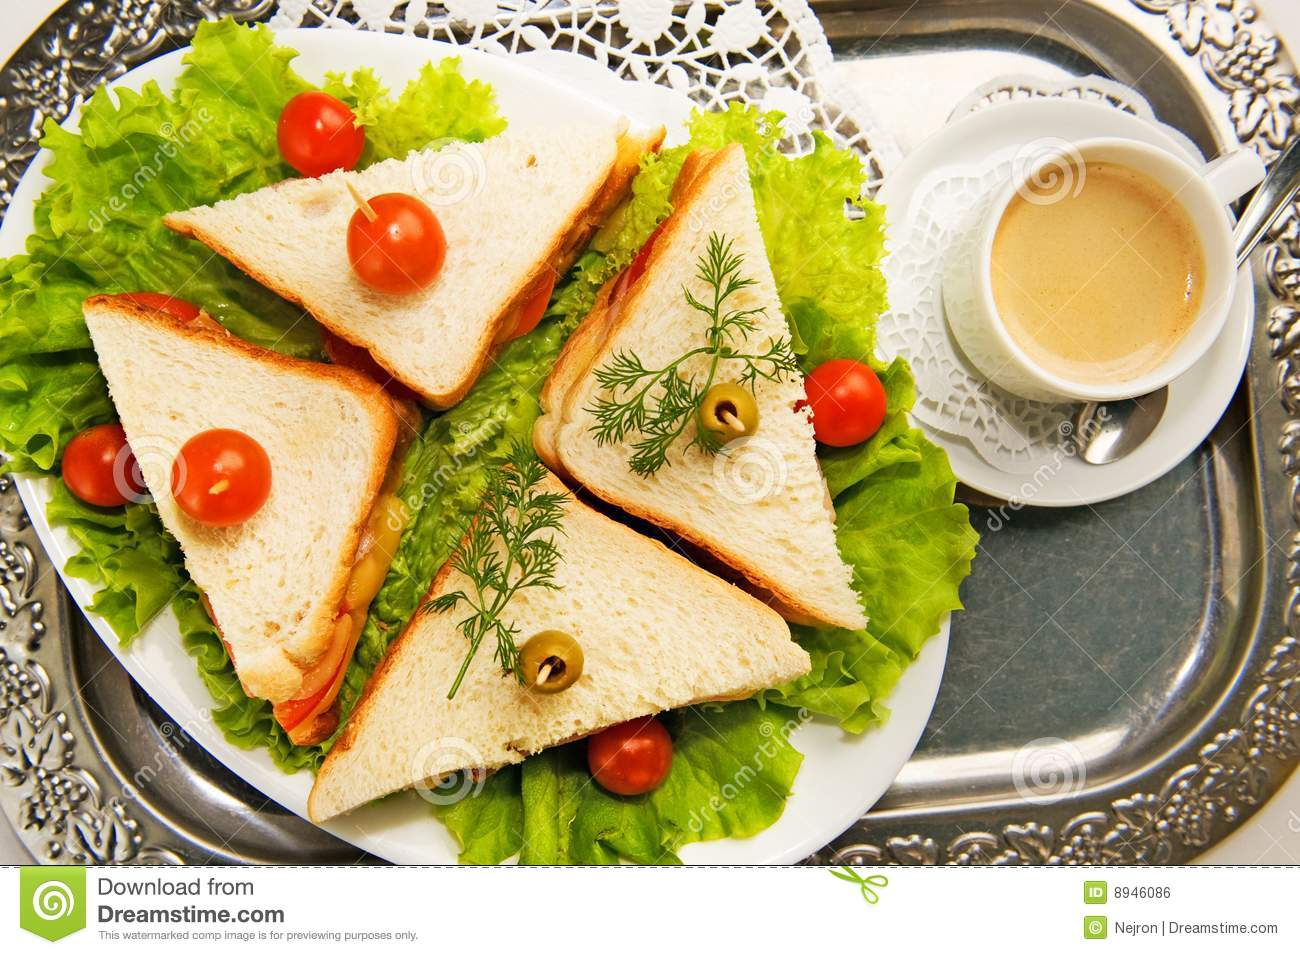 Home made canape sandwiches royalty free stock image for Canape wraps